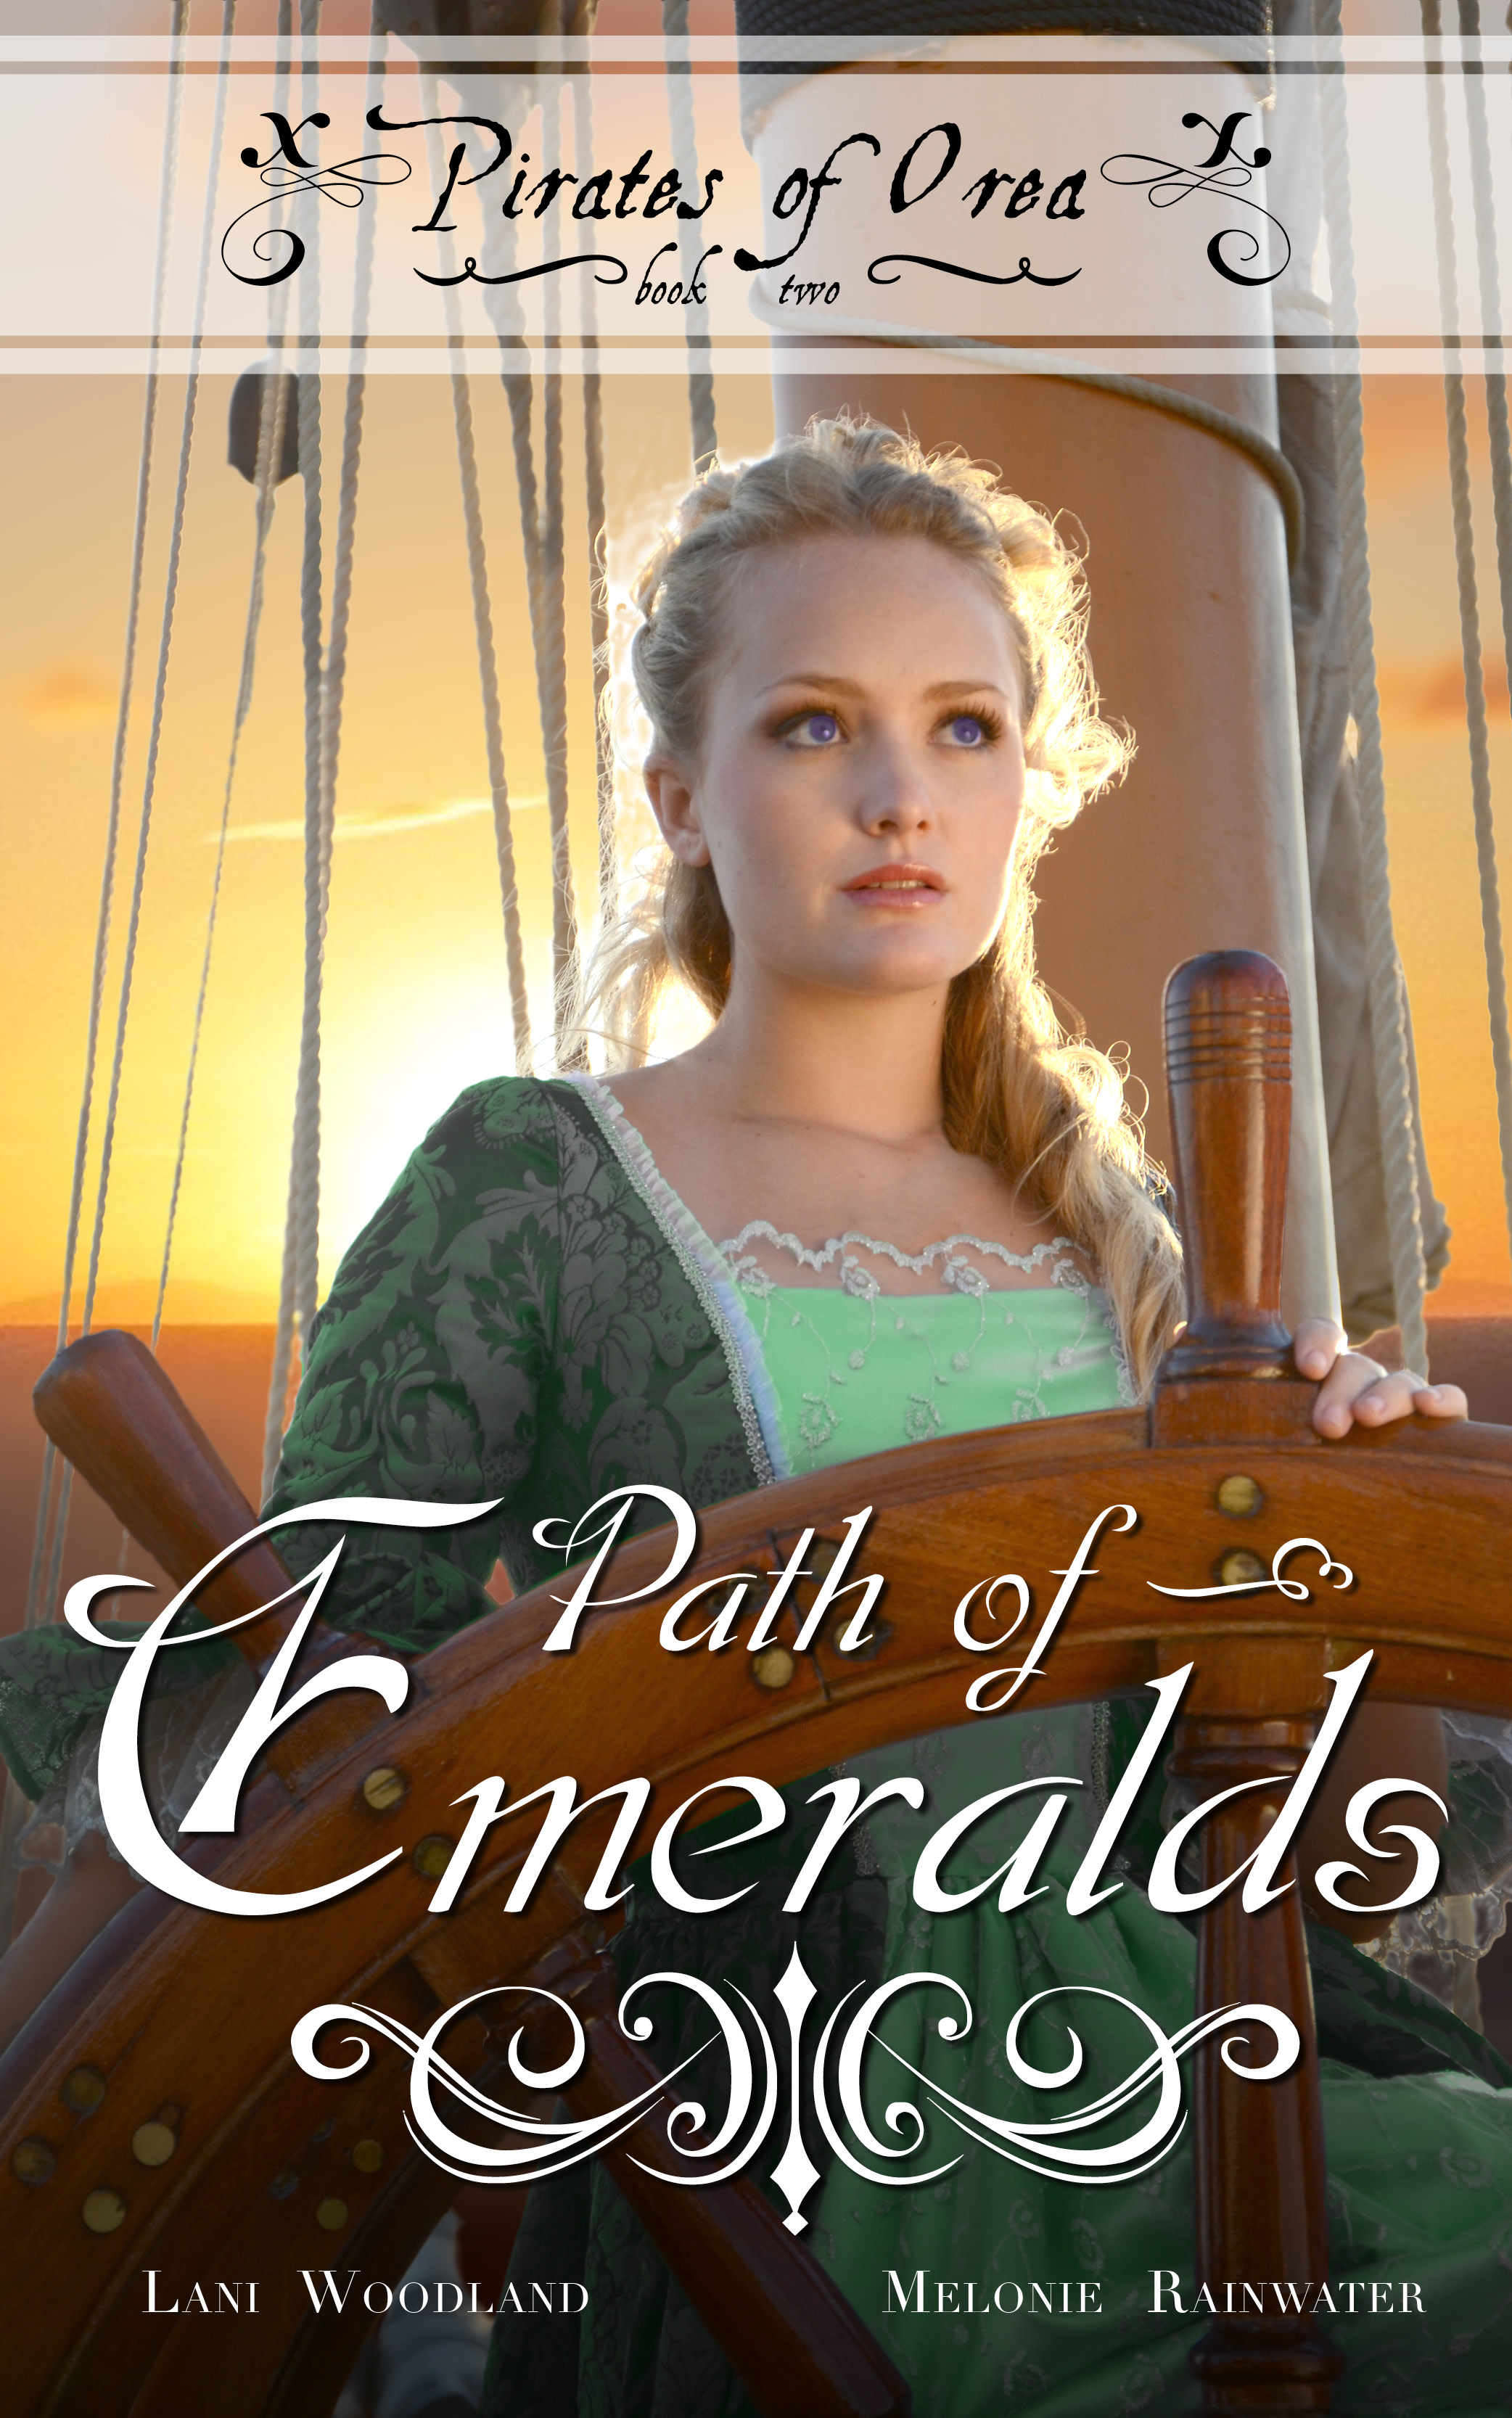 PATH OF EMERALDS - Lani Woodland & Melonie Rainwater